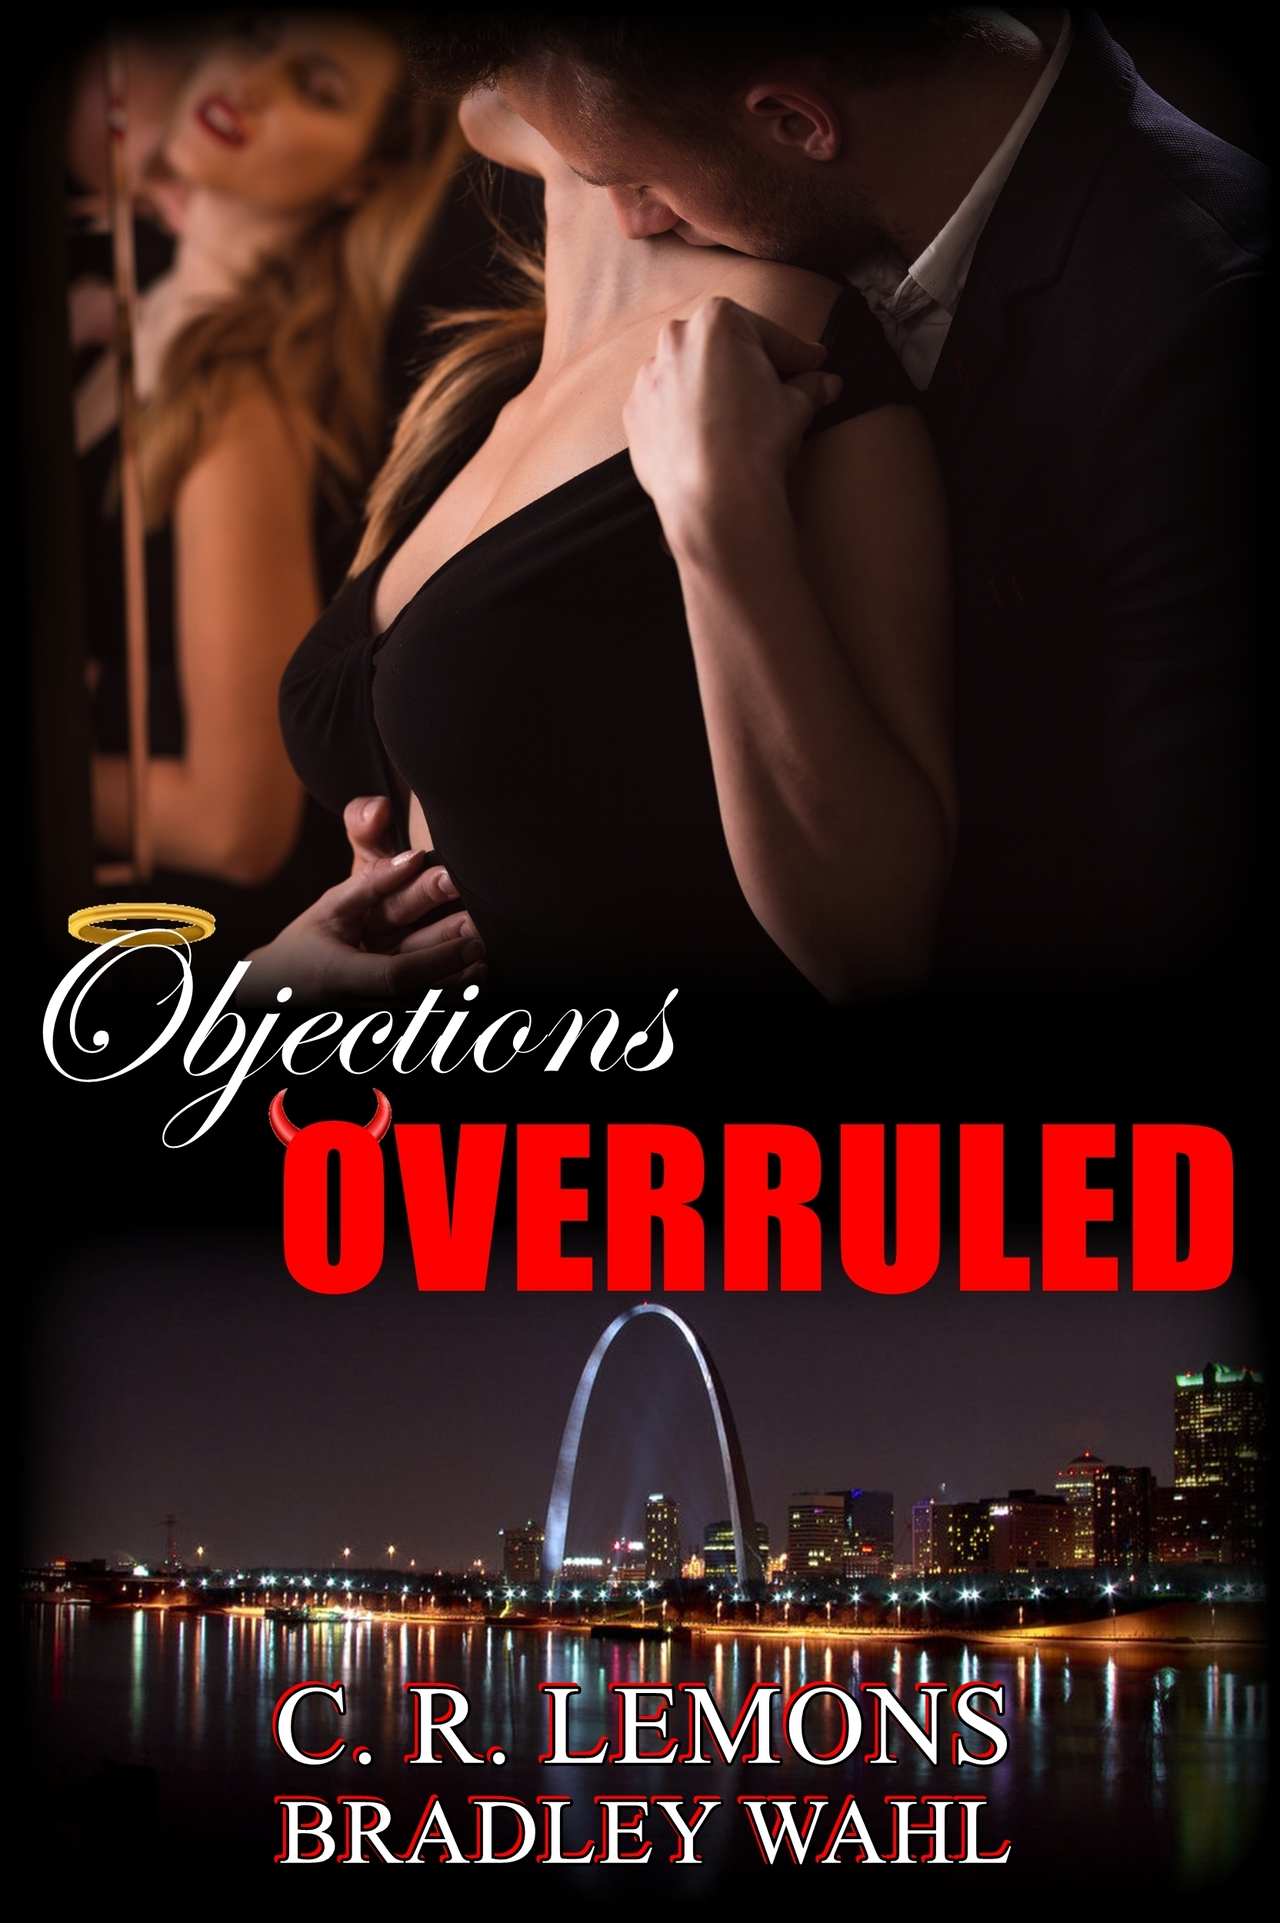 Objections overruled cover